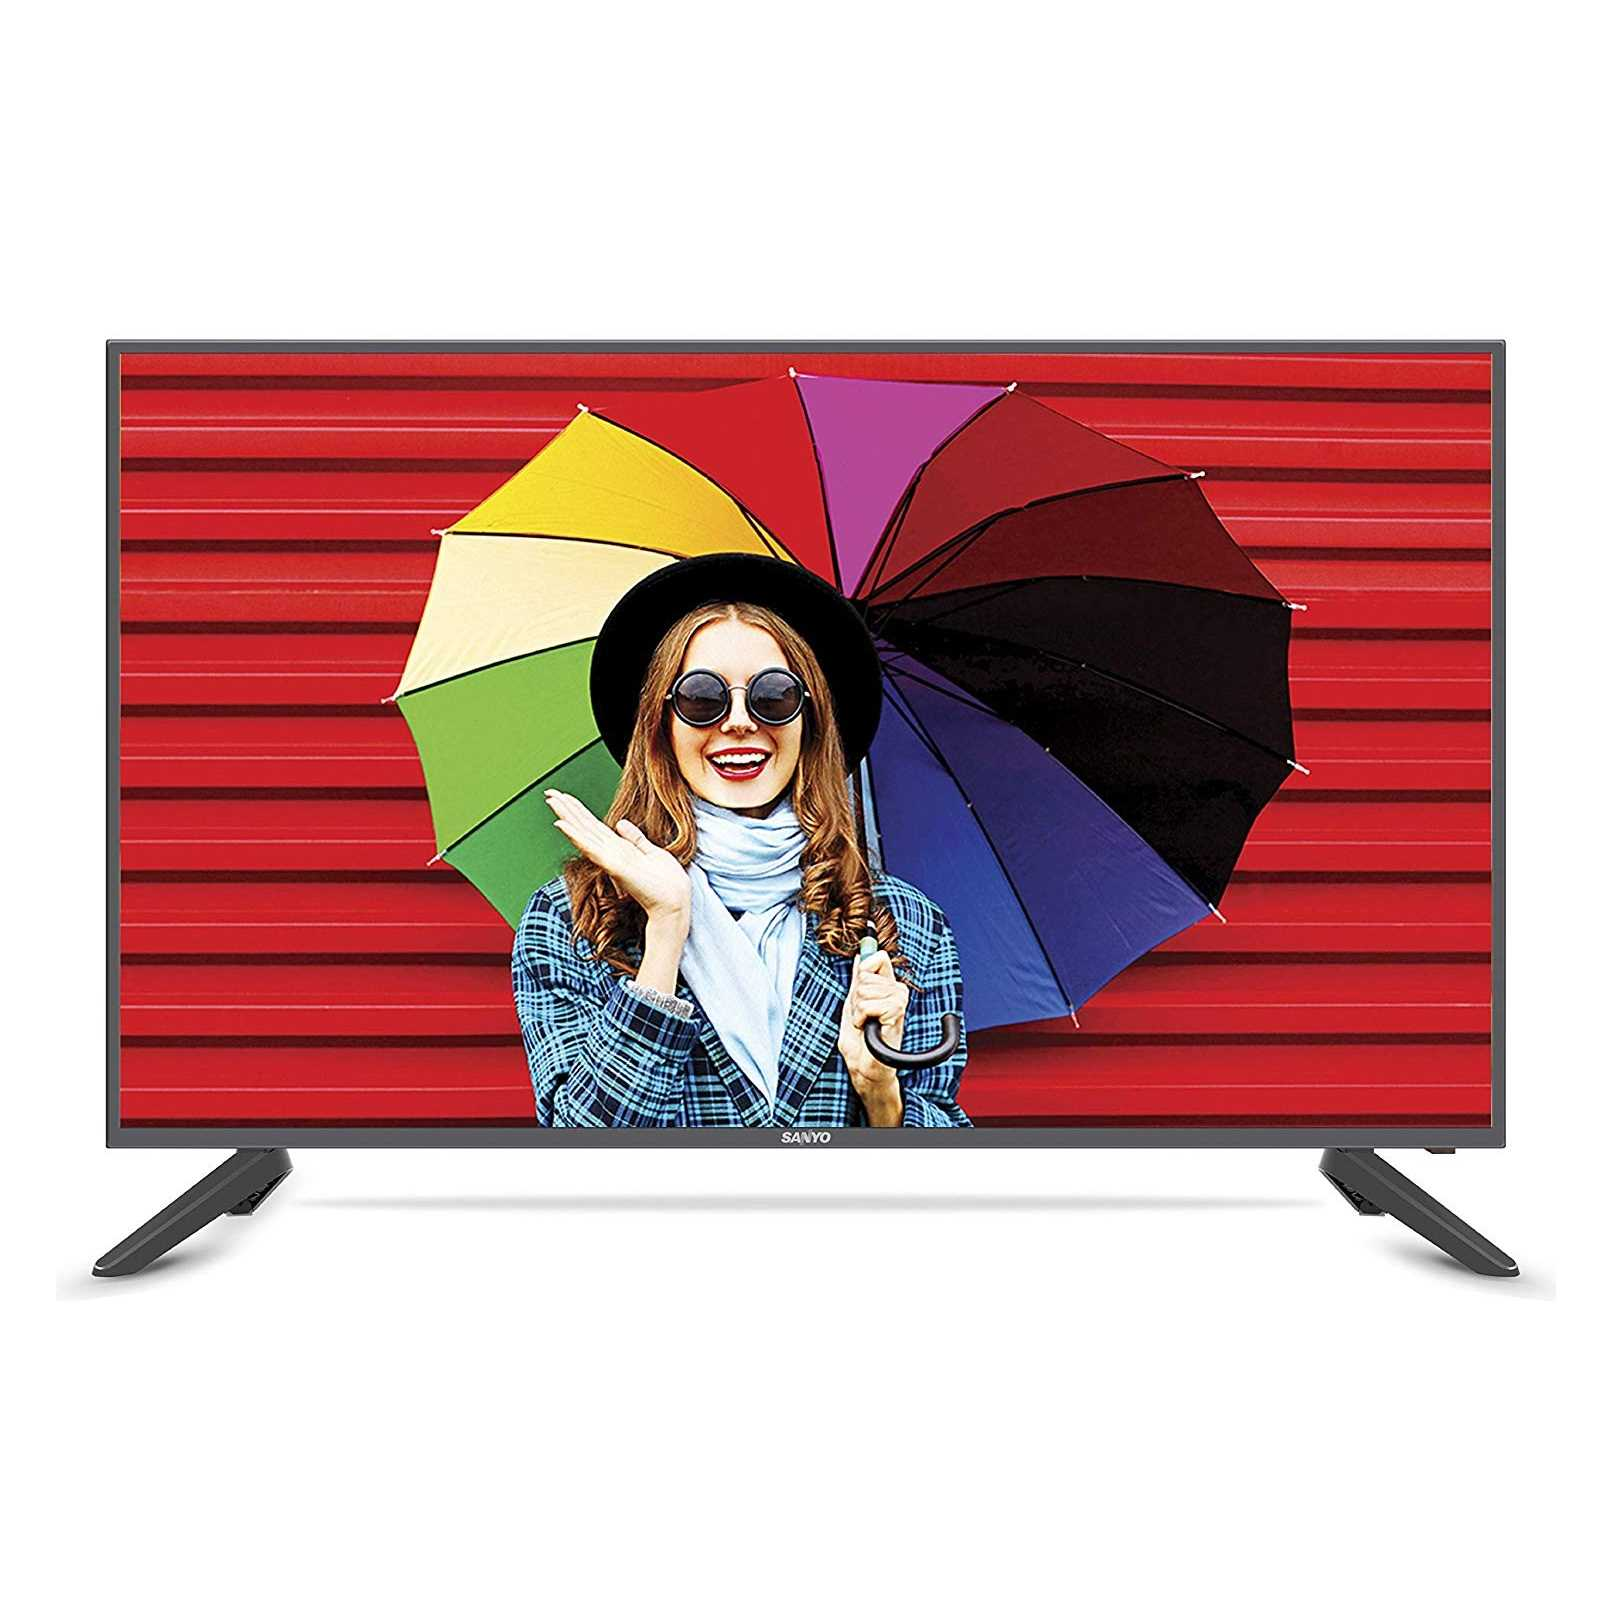 Sanyo XT-43S7300F 43 Inch Full HD LED Television